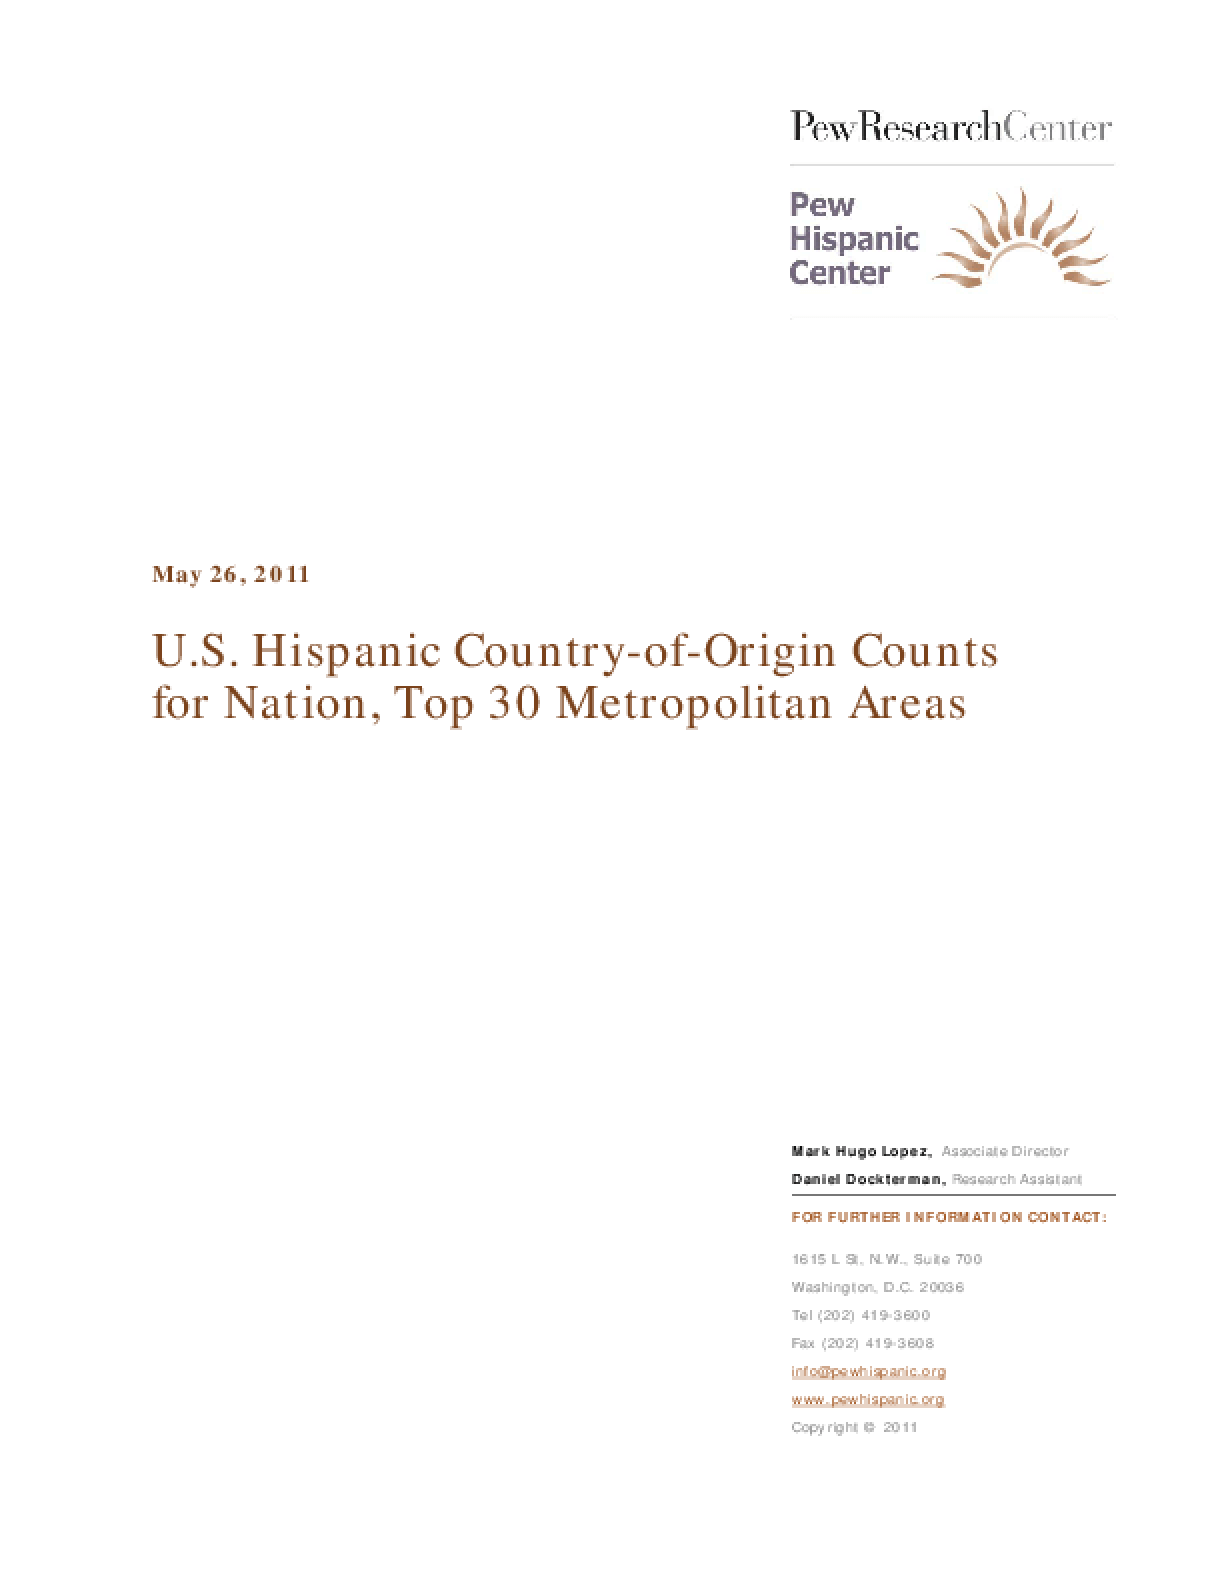 U.S. Hispanic Country-of-Origin Counts for Nation, Top 30 Metropolitan Areas